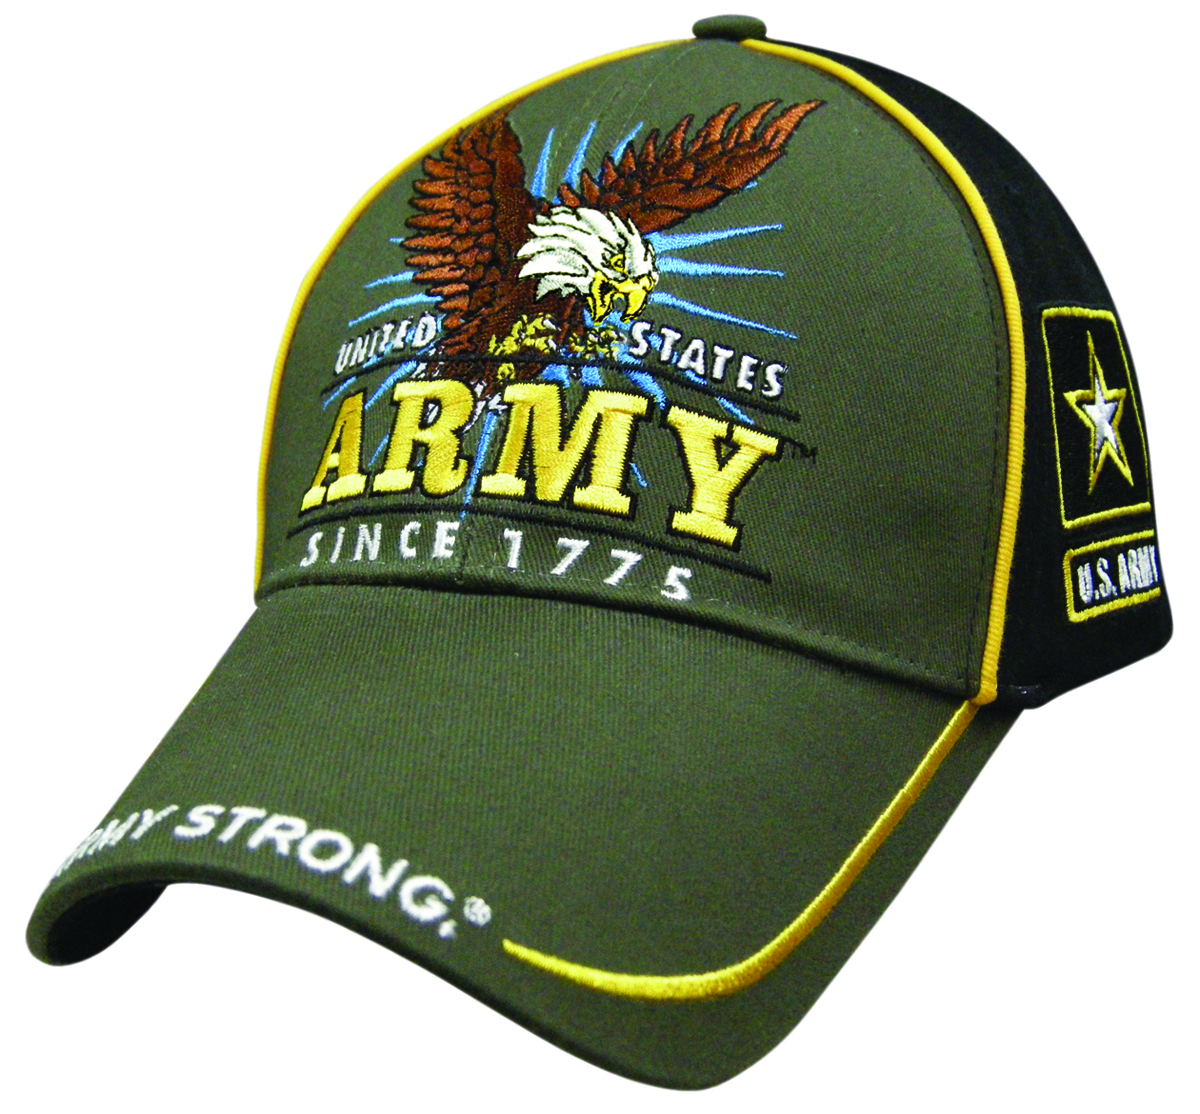 Licensed Usmy Veteran Army Strong Since 1775with Army Symbol